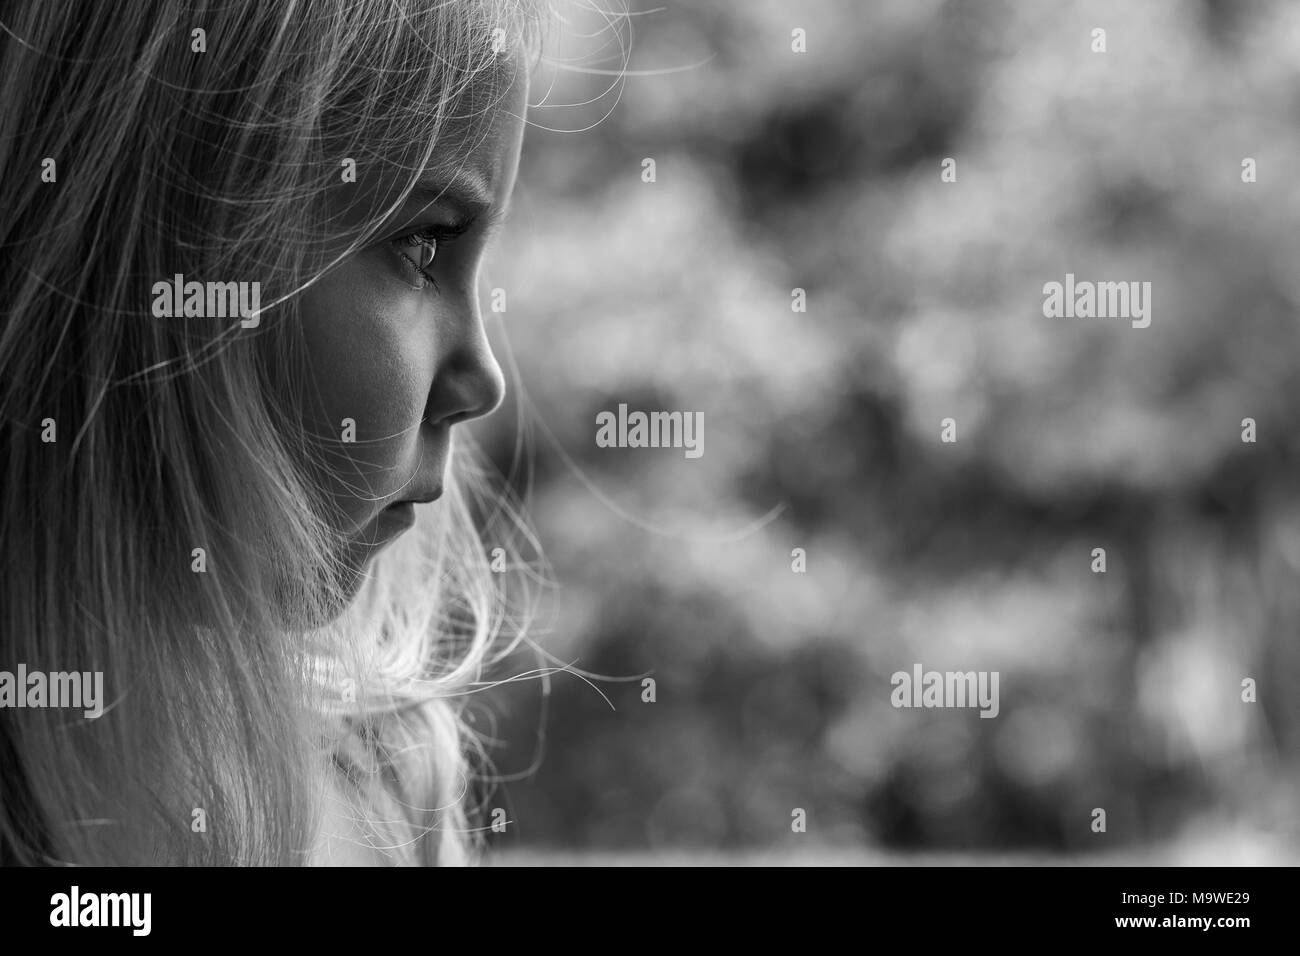 Black and white close up of a little girl looking frustrated - Stock Image